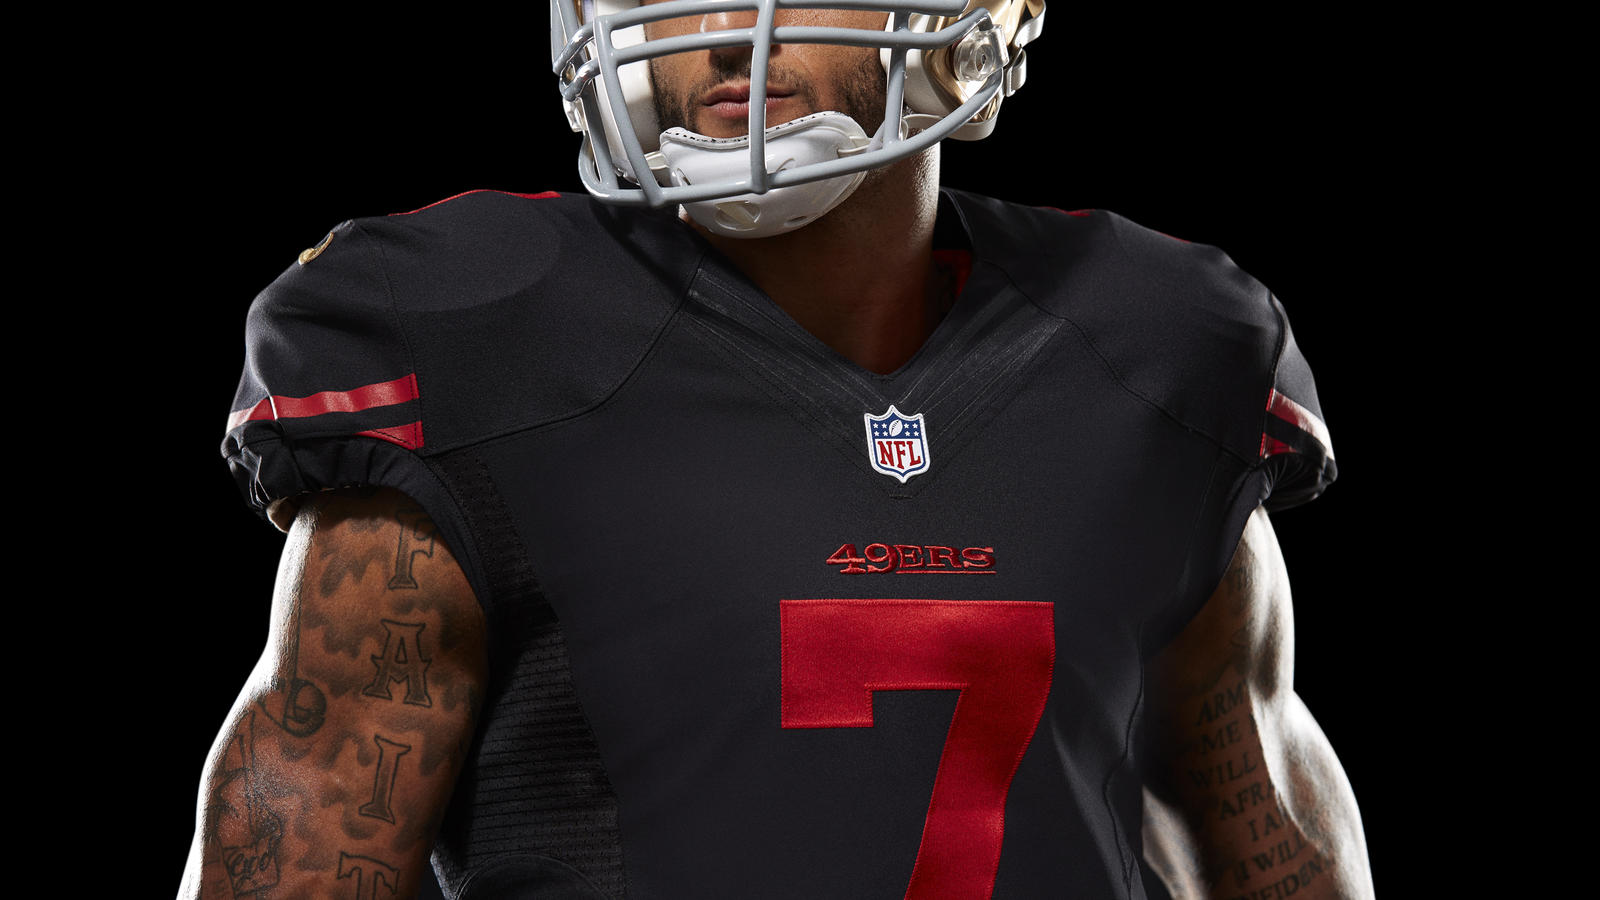 pretty nice 5d46e 52623 black and red 49ers jersey